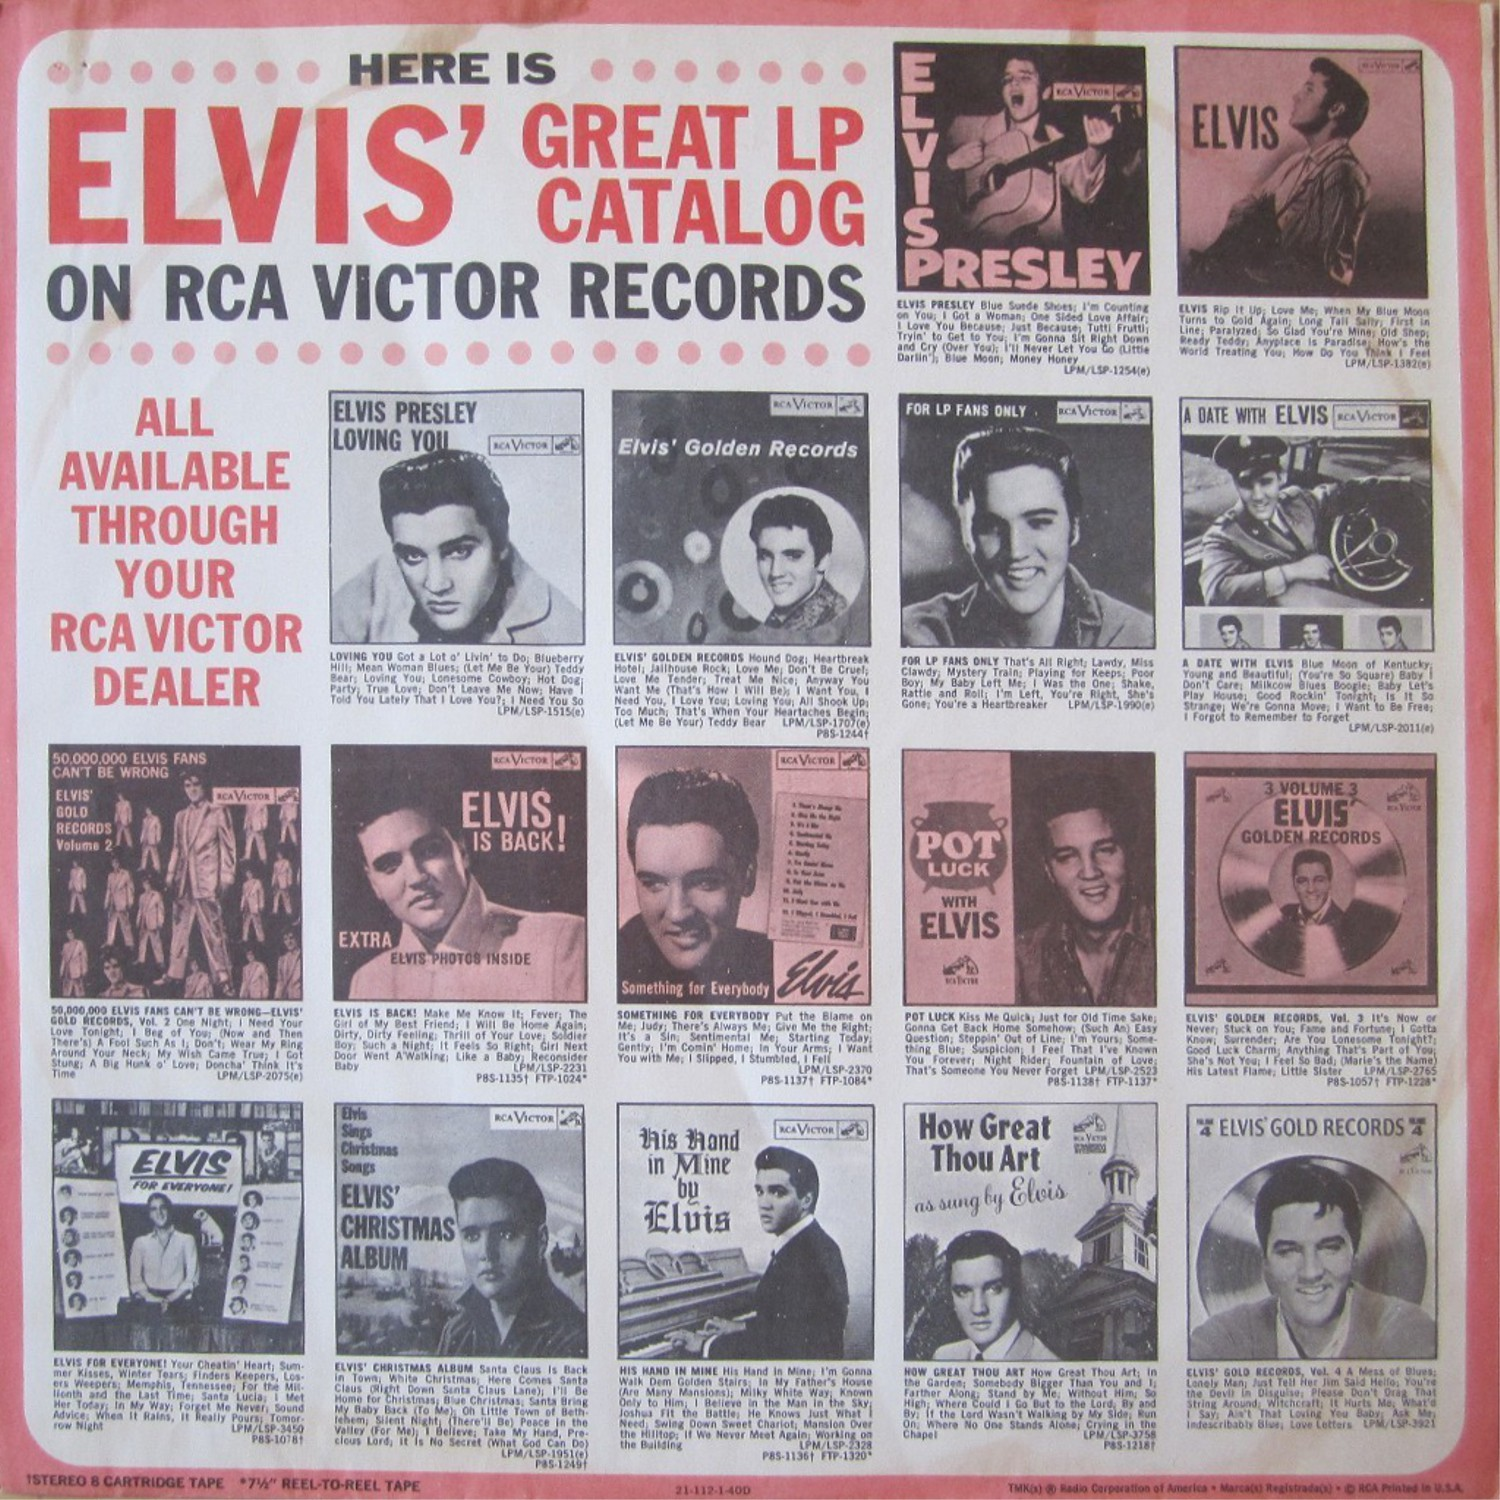 ELVIS' GOLD RECORDS  Lsp1707ey2ljk